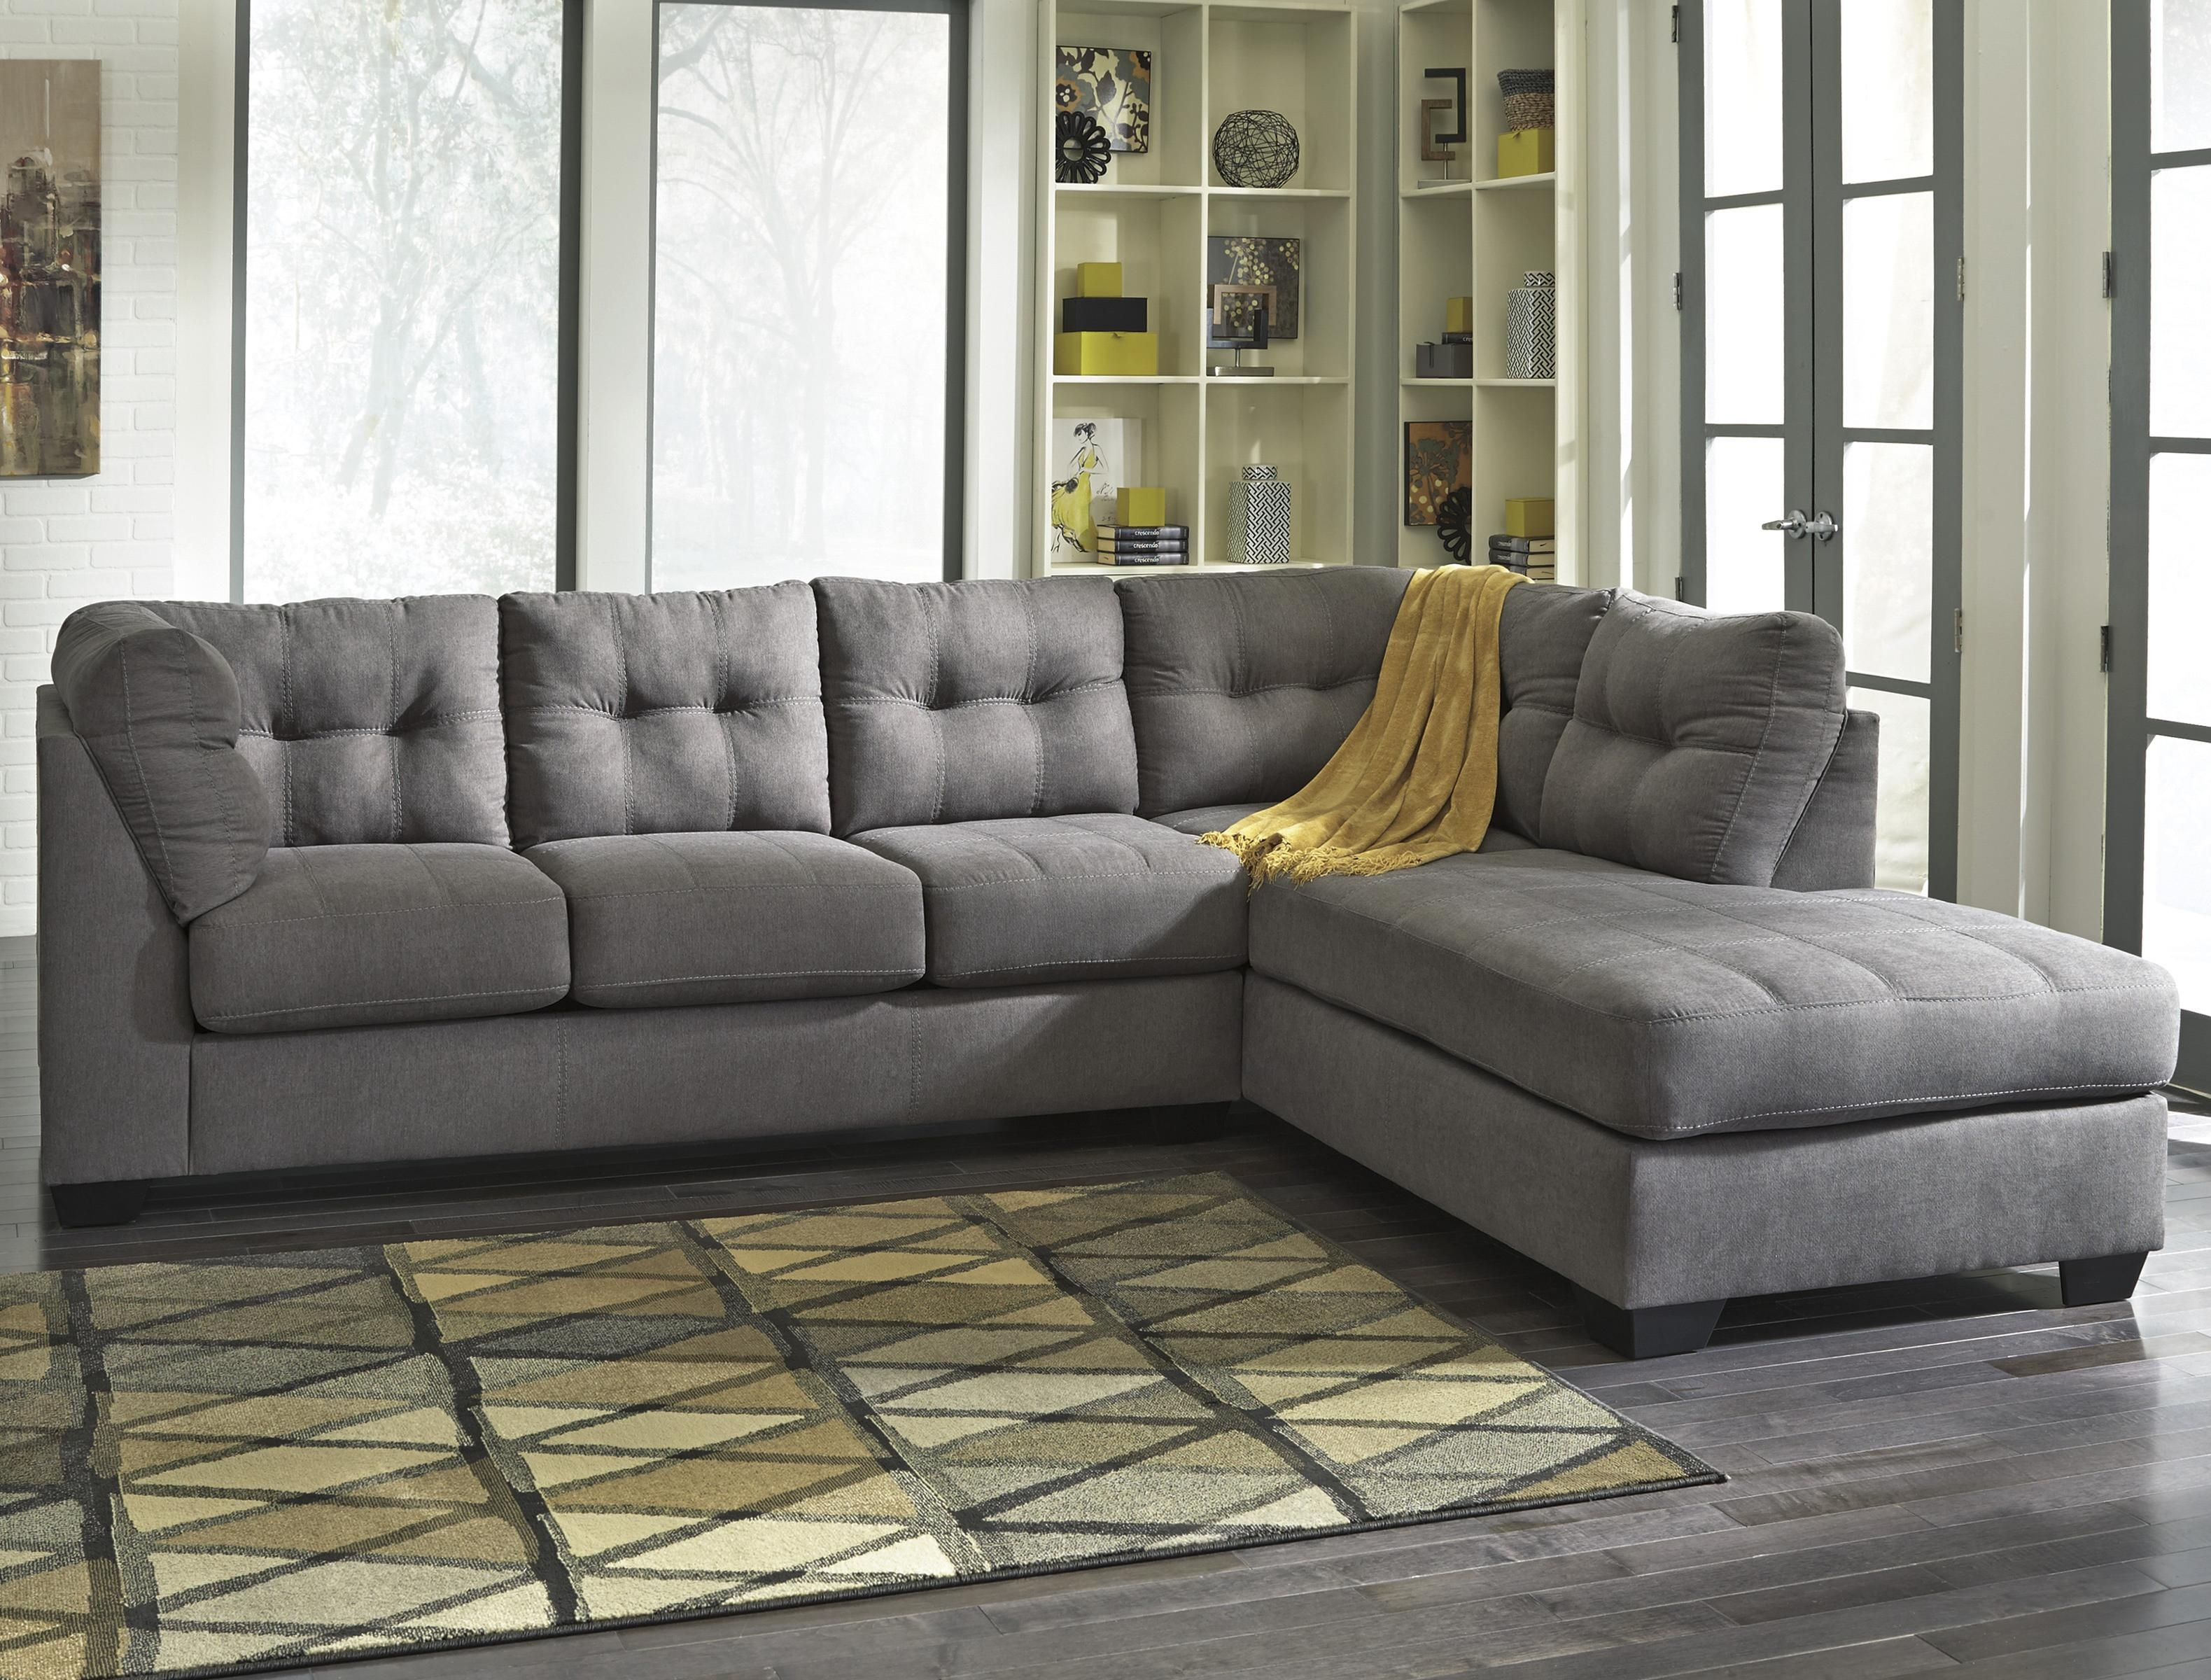 Sectional Sofas Sacramento – Hotelsbacau With Sacramento Sectional Sofas (Image 6 of 10)